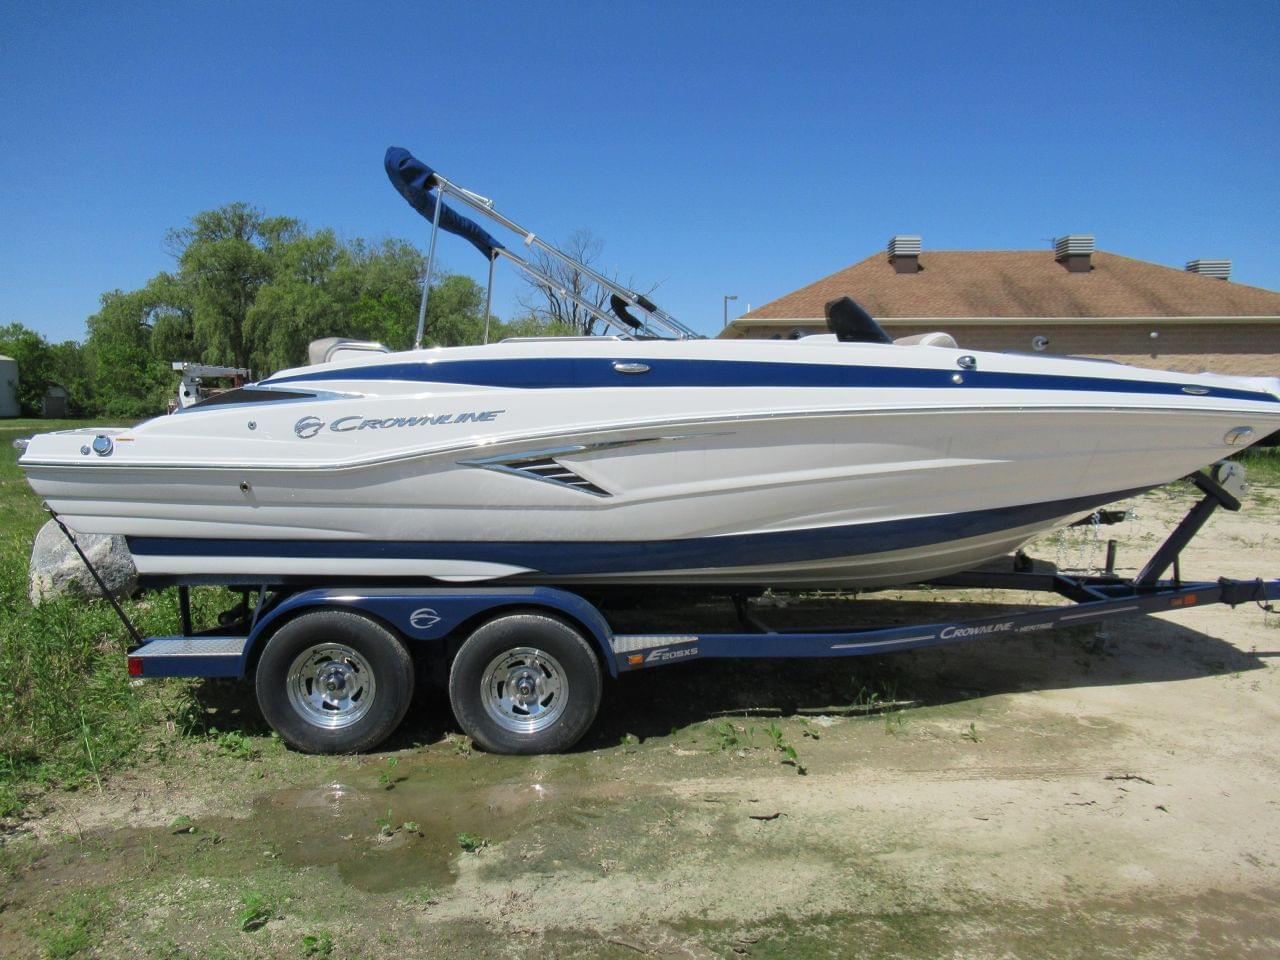 New 2019 Crownline E205XS, Stock #CL54838 - The Boat House